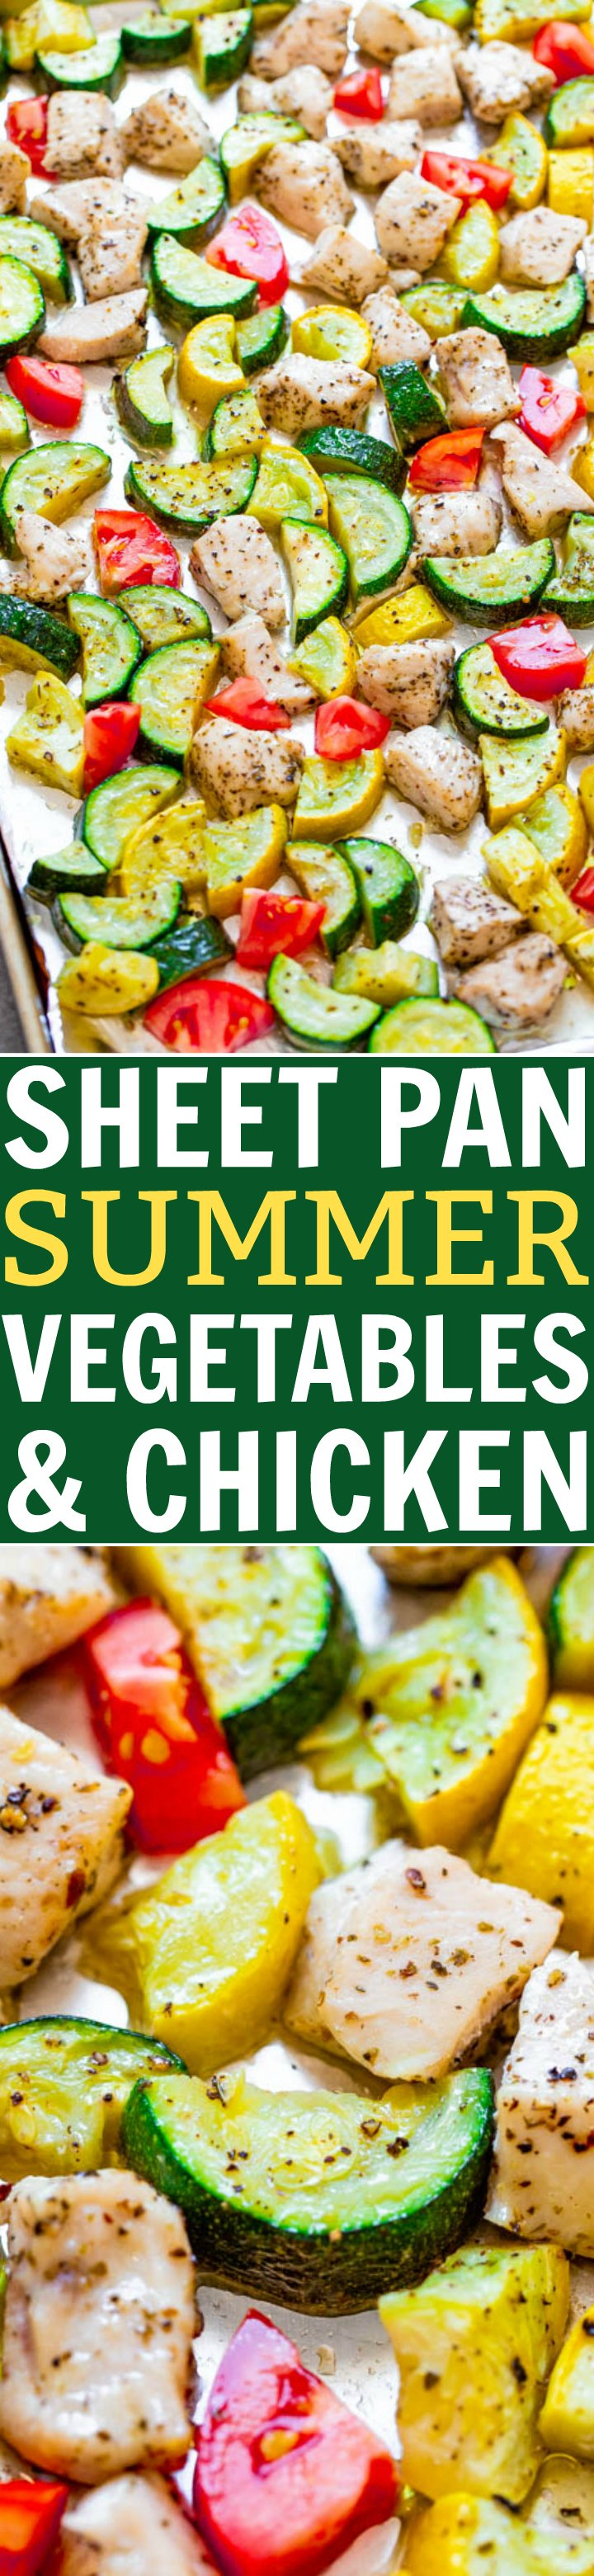 Sheet Pan Summer Vegetables and Chicken - Fast, EASY, HEALTHY, and perfect for your seasonal summer zucchini, squash and tomatoes!! A DELISH one-pan meal with zero cleanup that's great for busy weeknights!!